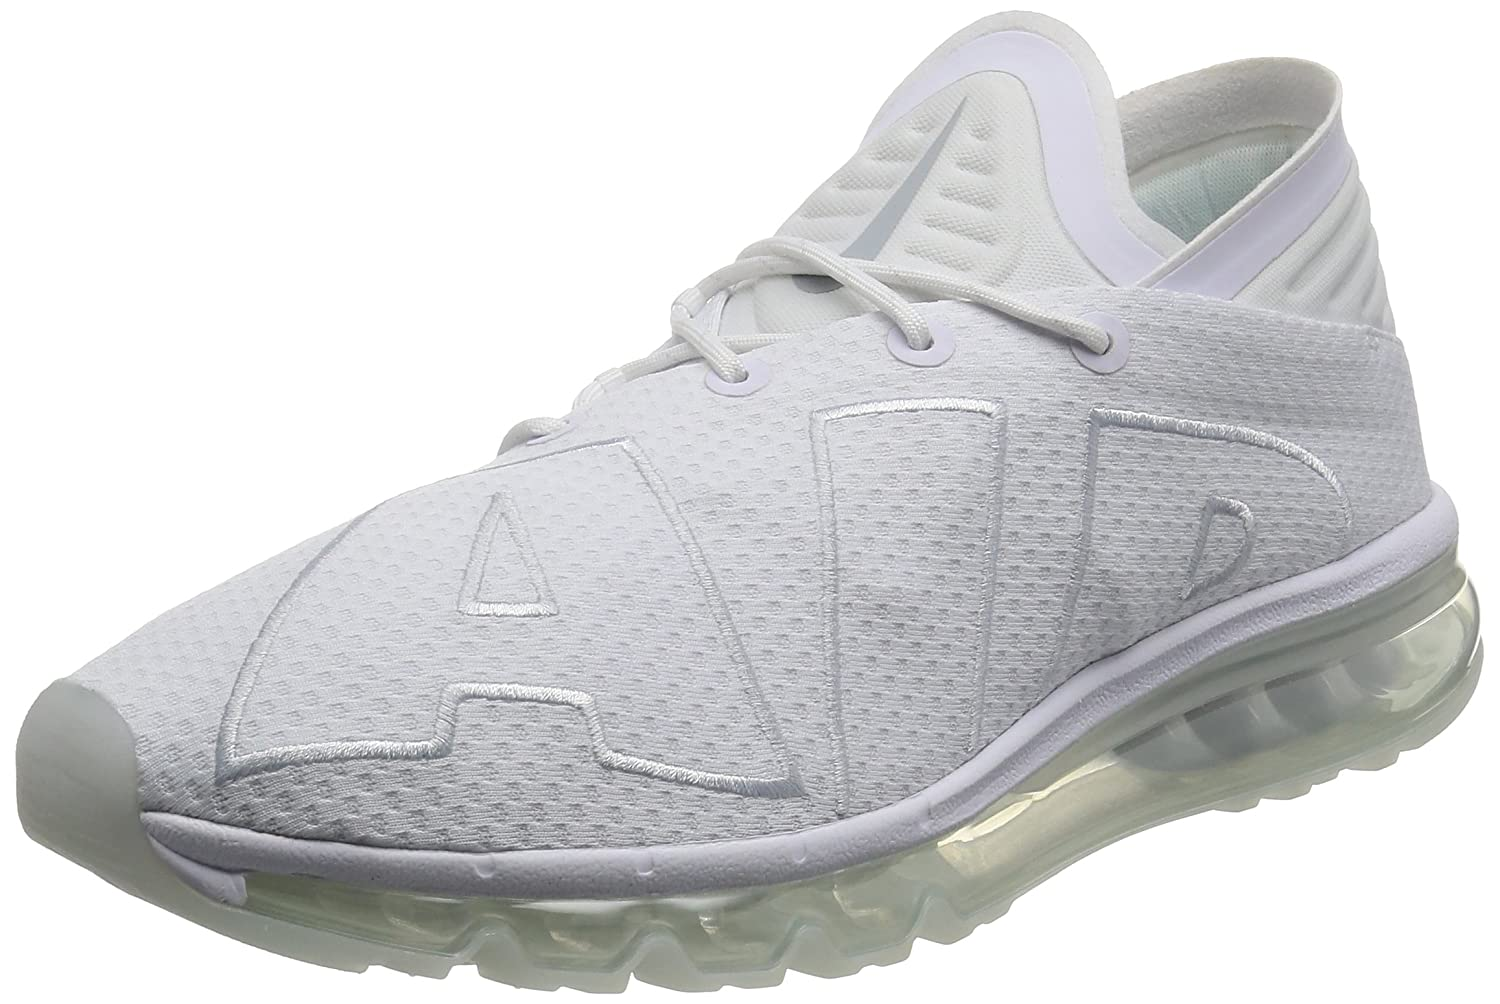 NIKE Air Max Flair, Herren Sneaker Weiß Pure Platinum 42 EU